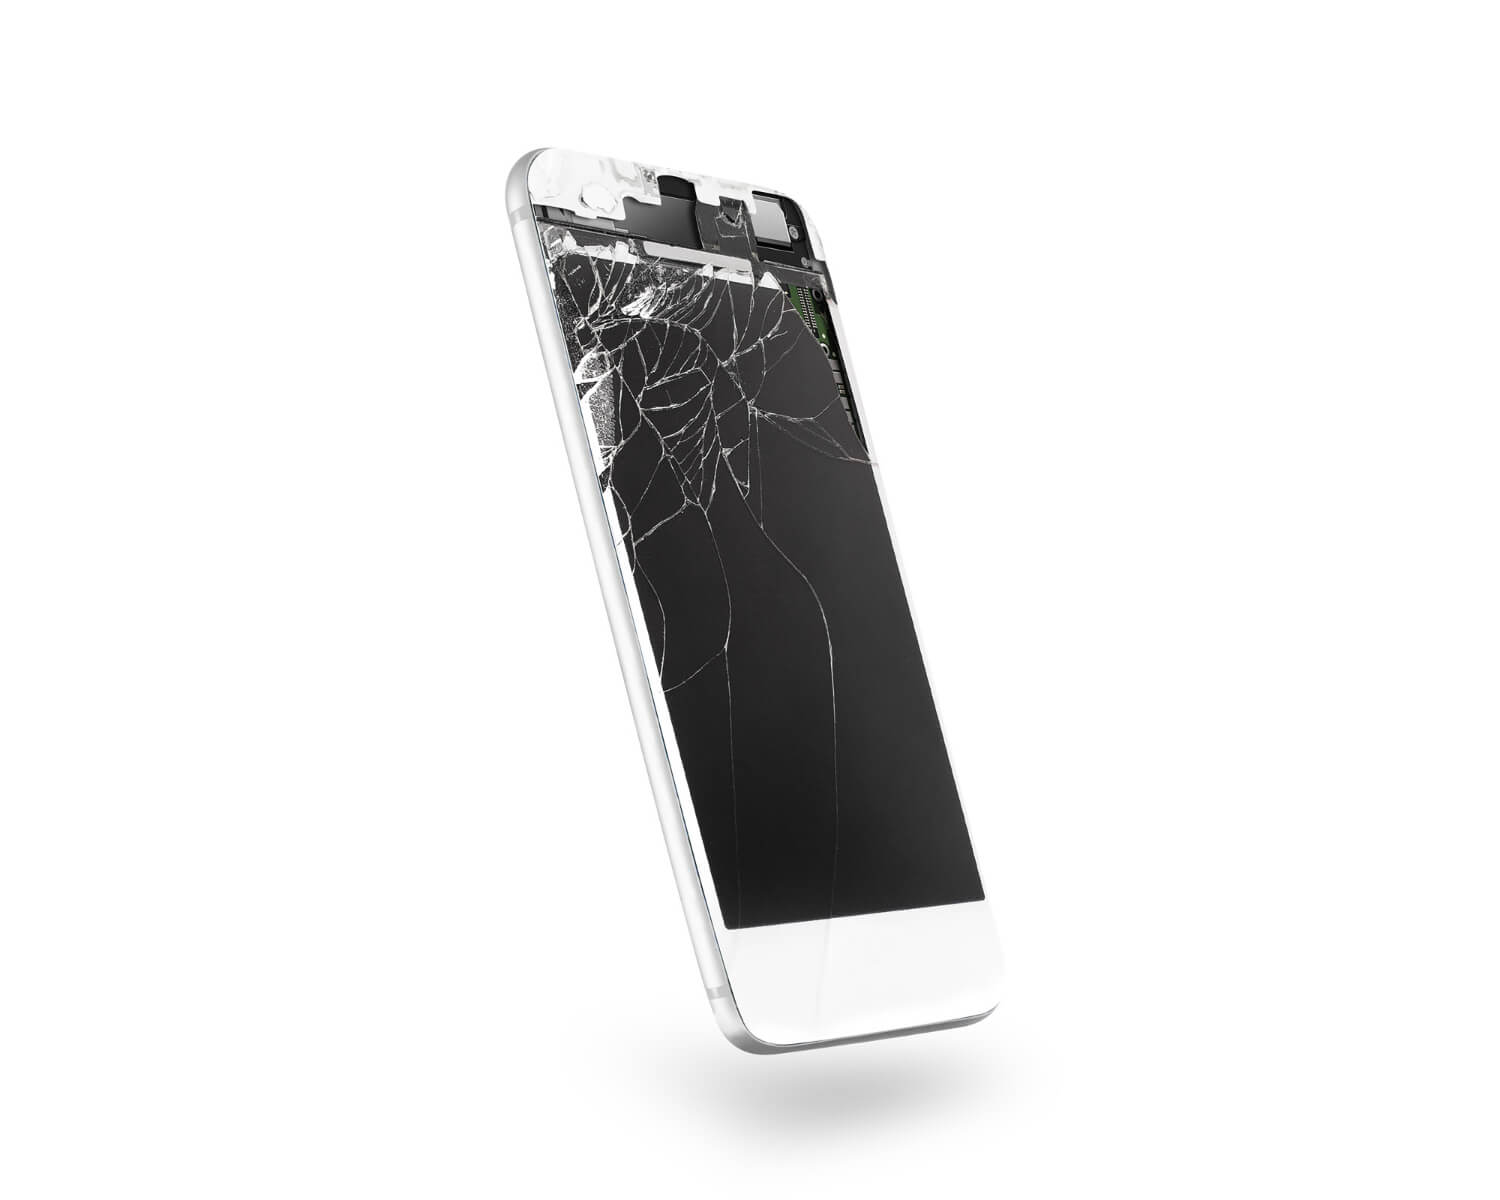 broken-white-mobile-phone-screen-side-view-isolated-2-1